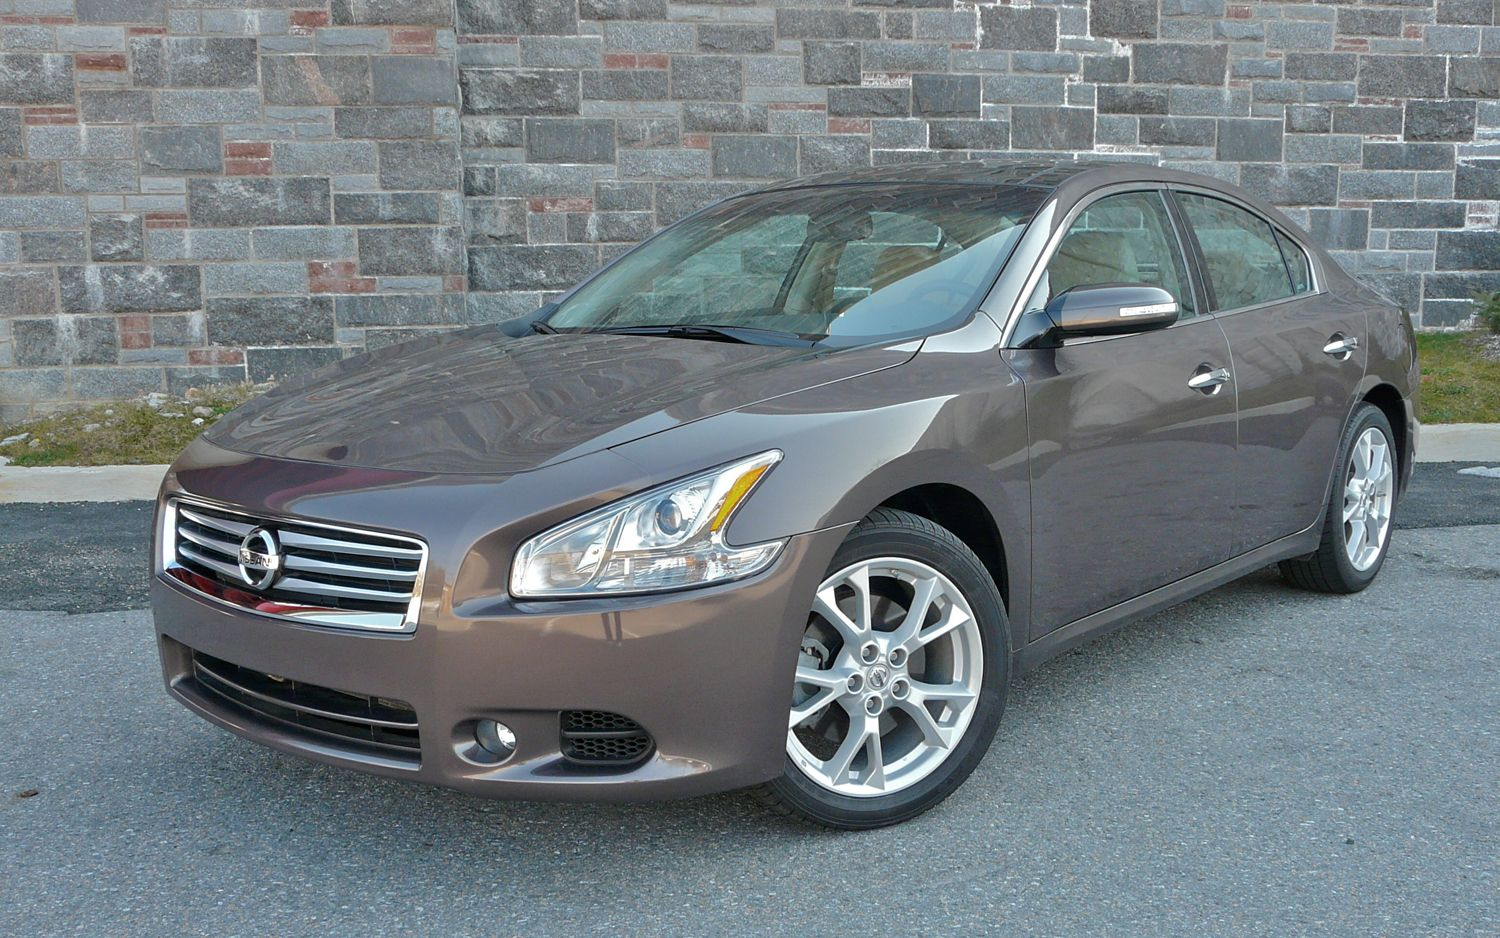 Acura Tl Wheels >> Driven: 2012 Nissan Maxima - Automobile Magazine